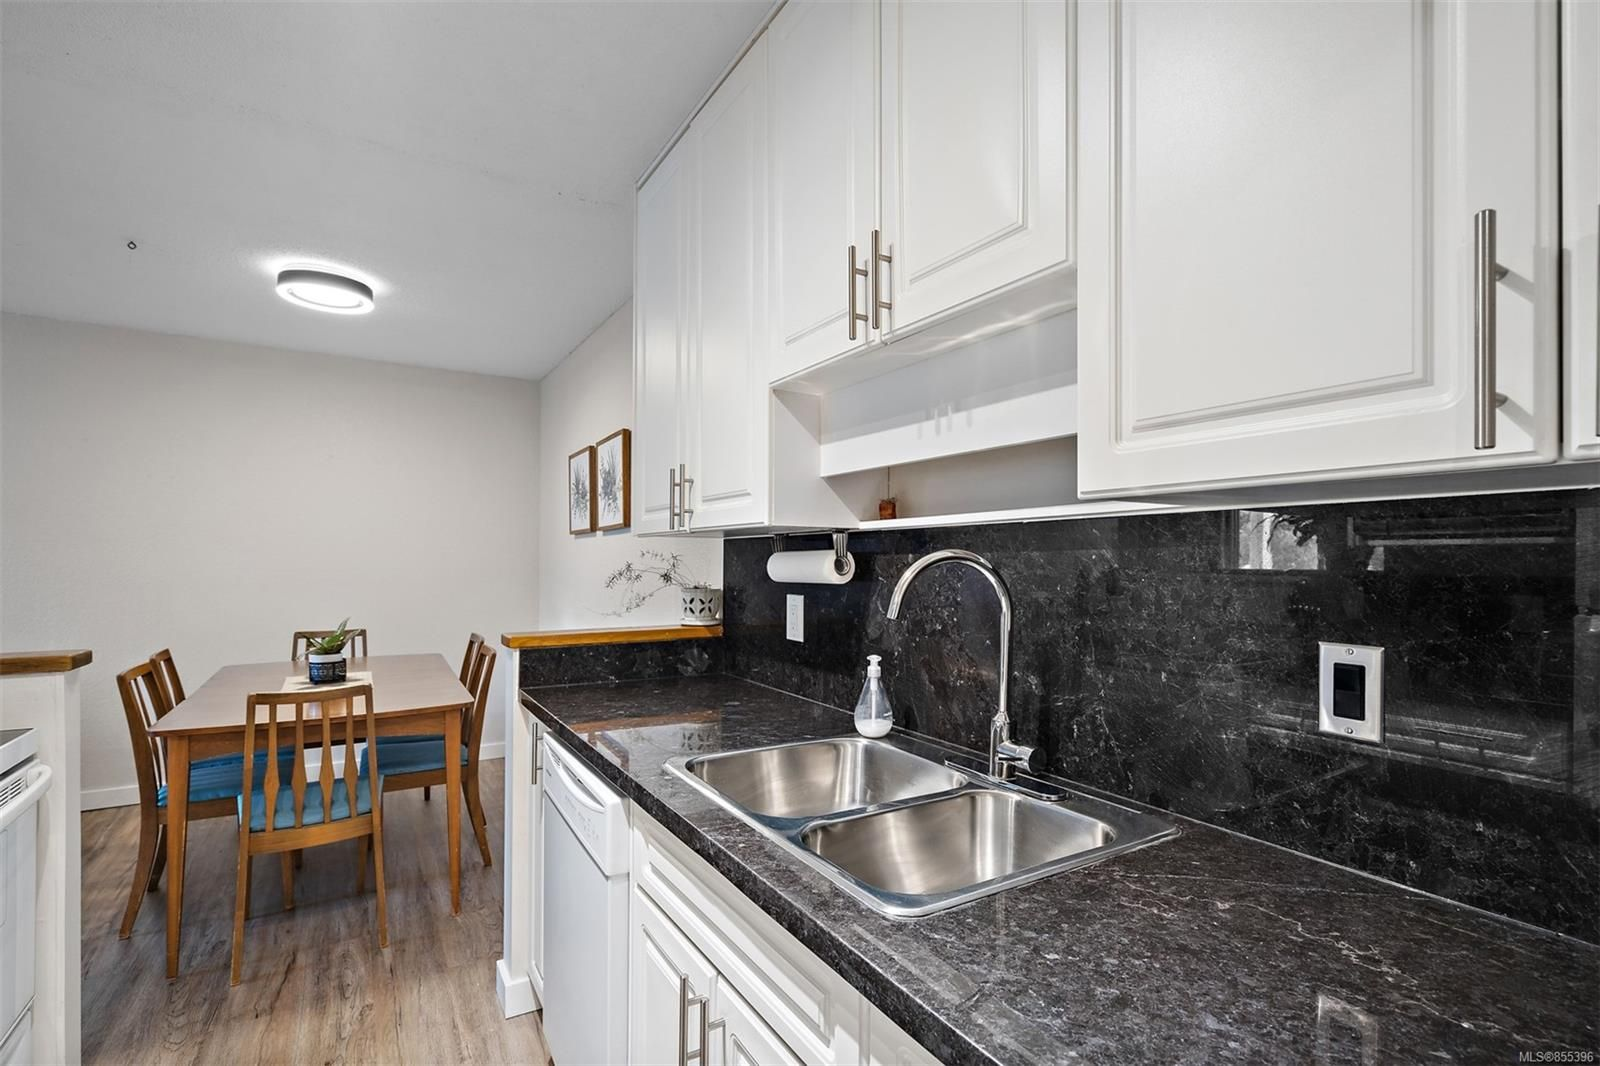 Photo 16: Photos: 308 1060 Linden Ave in : Vi Rockland Condo for sale (Victoria)  : MLS®# 855396